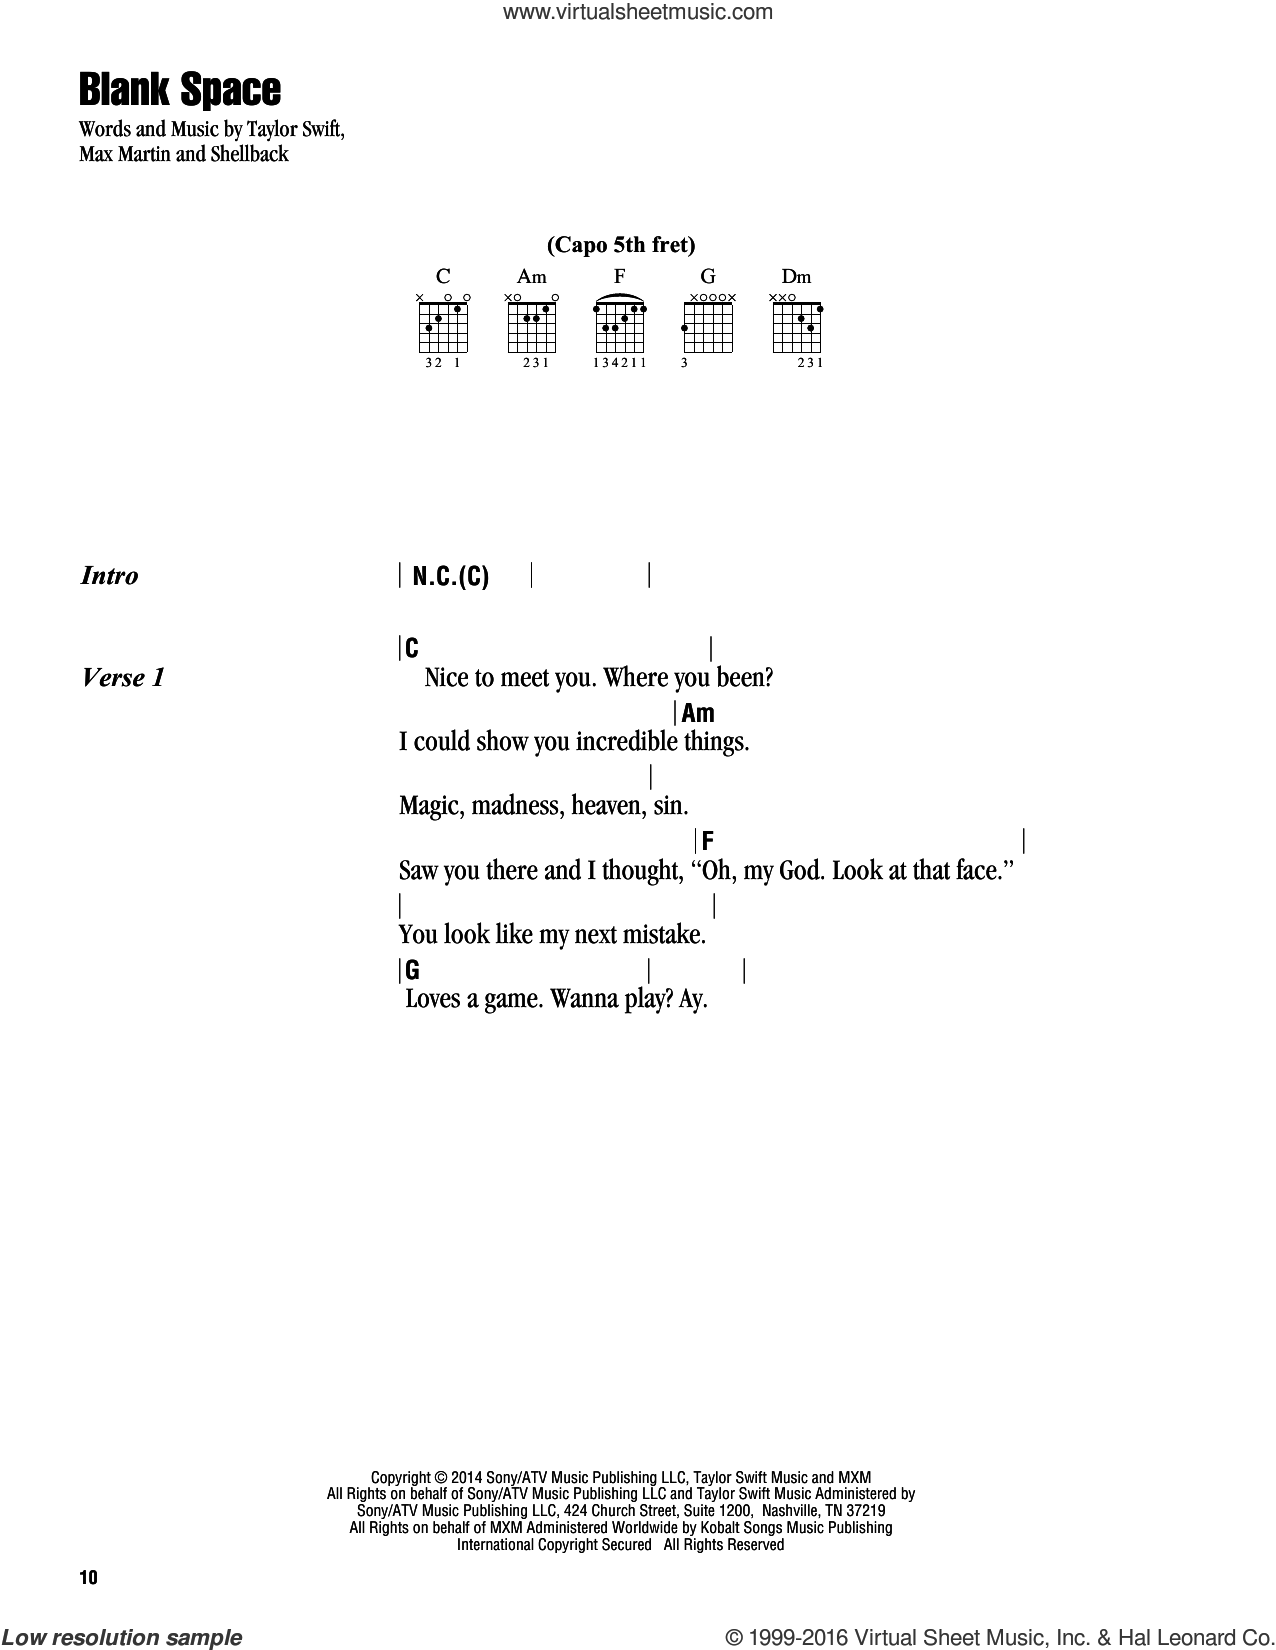 Swift - Blank Space sheet music for guitar (chords)